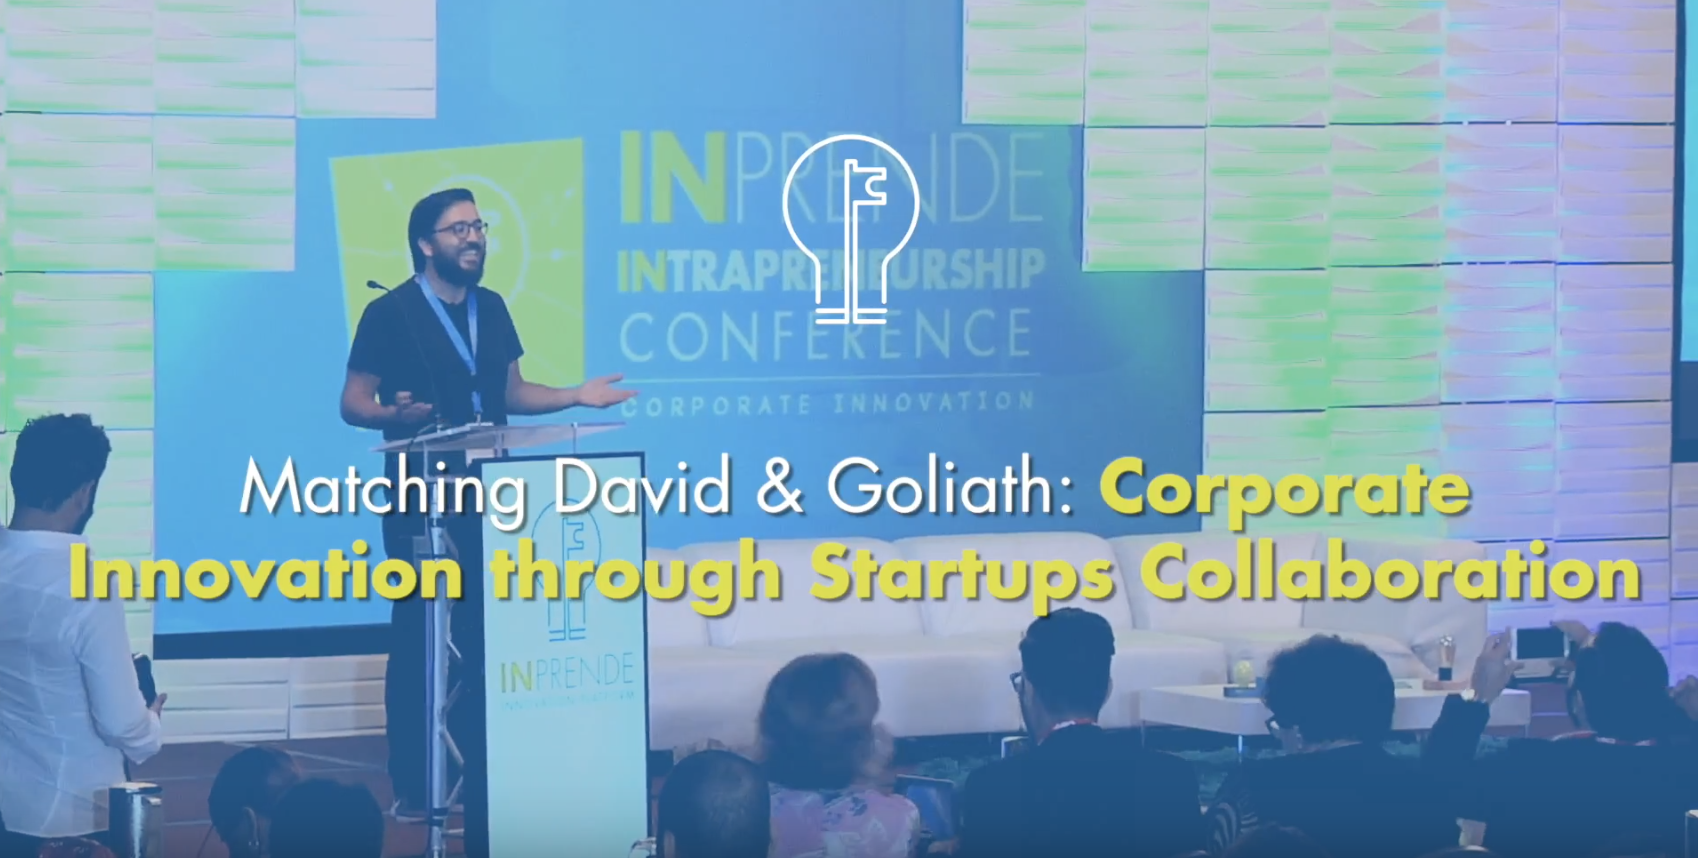 Conferencia – Corporate Innovation though Startups Collaboration